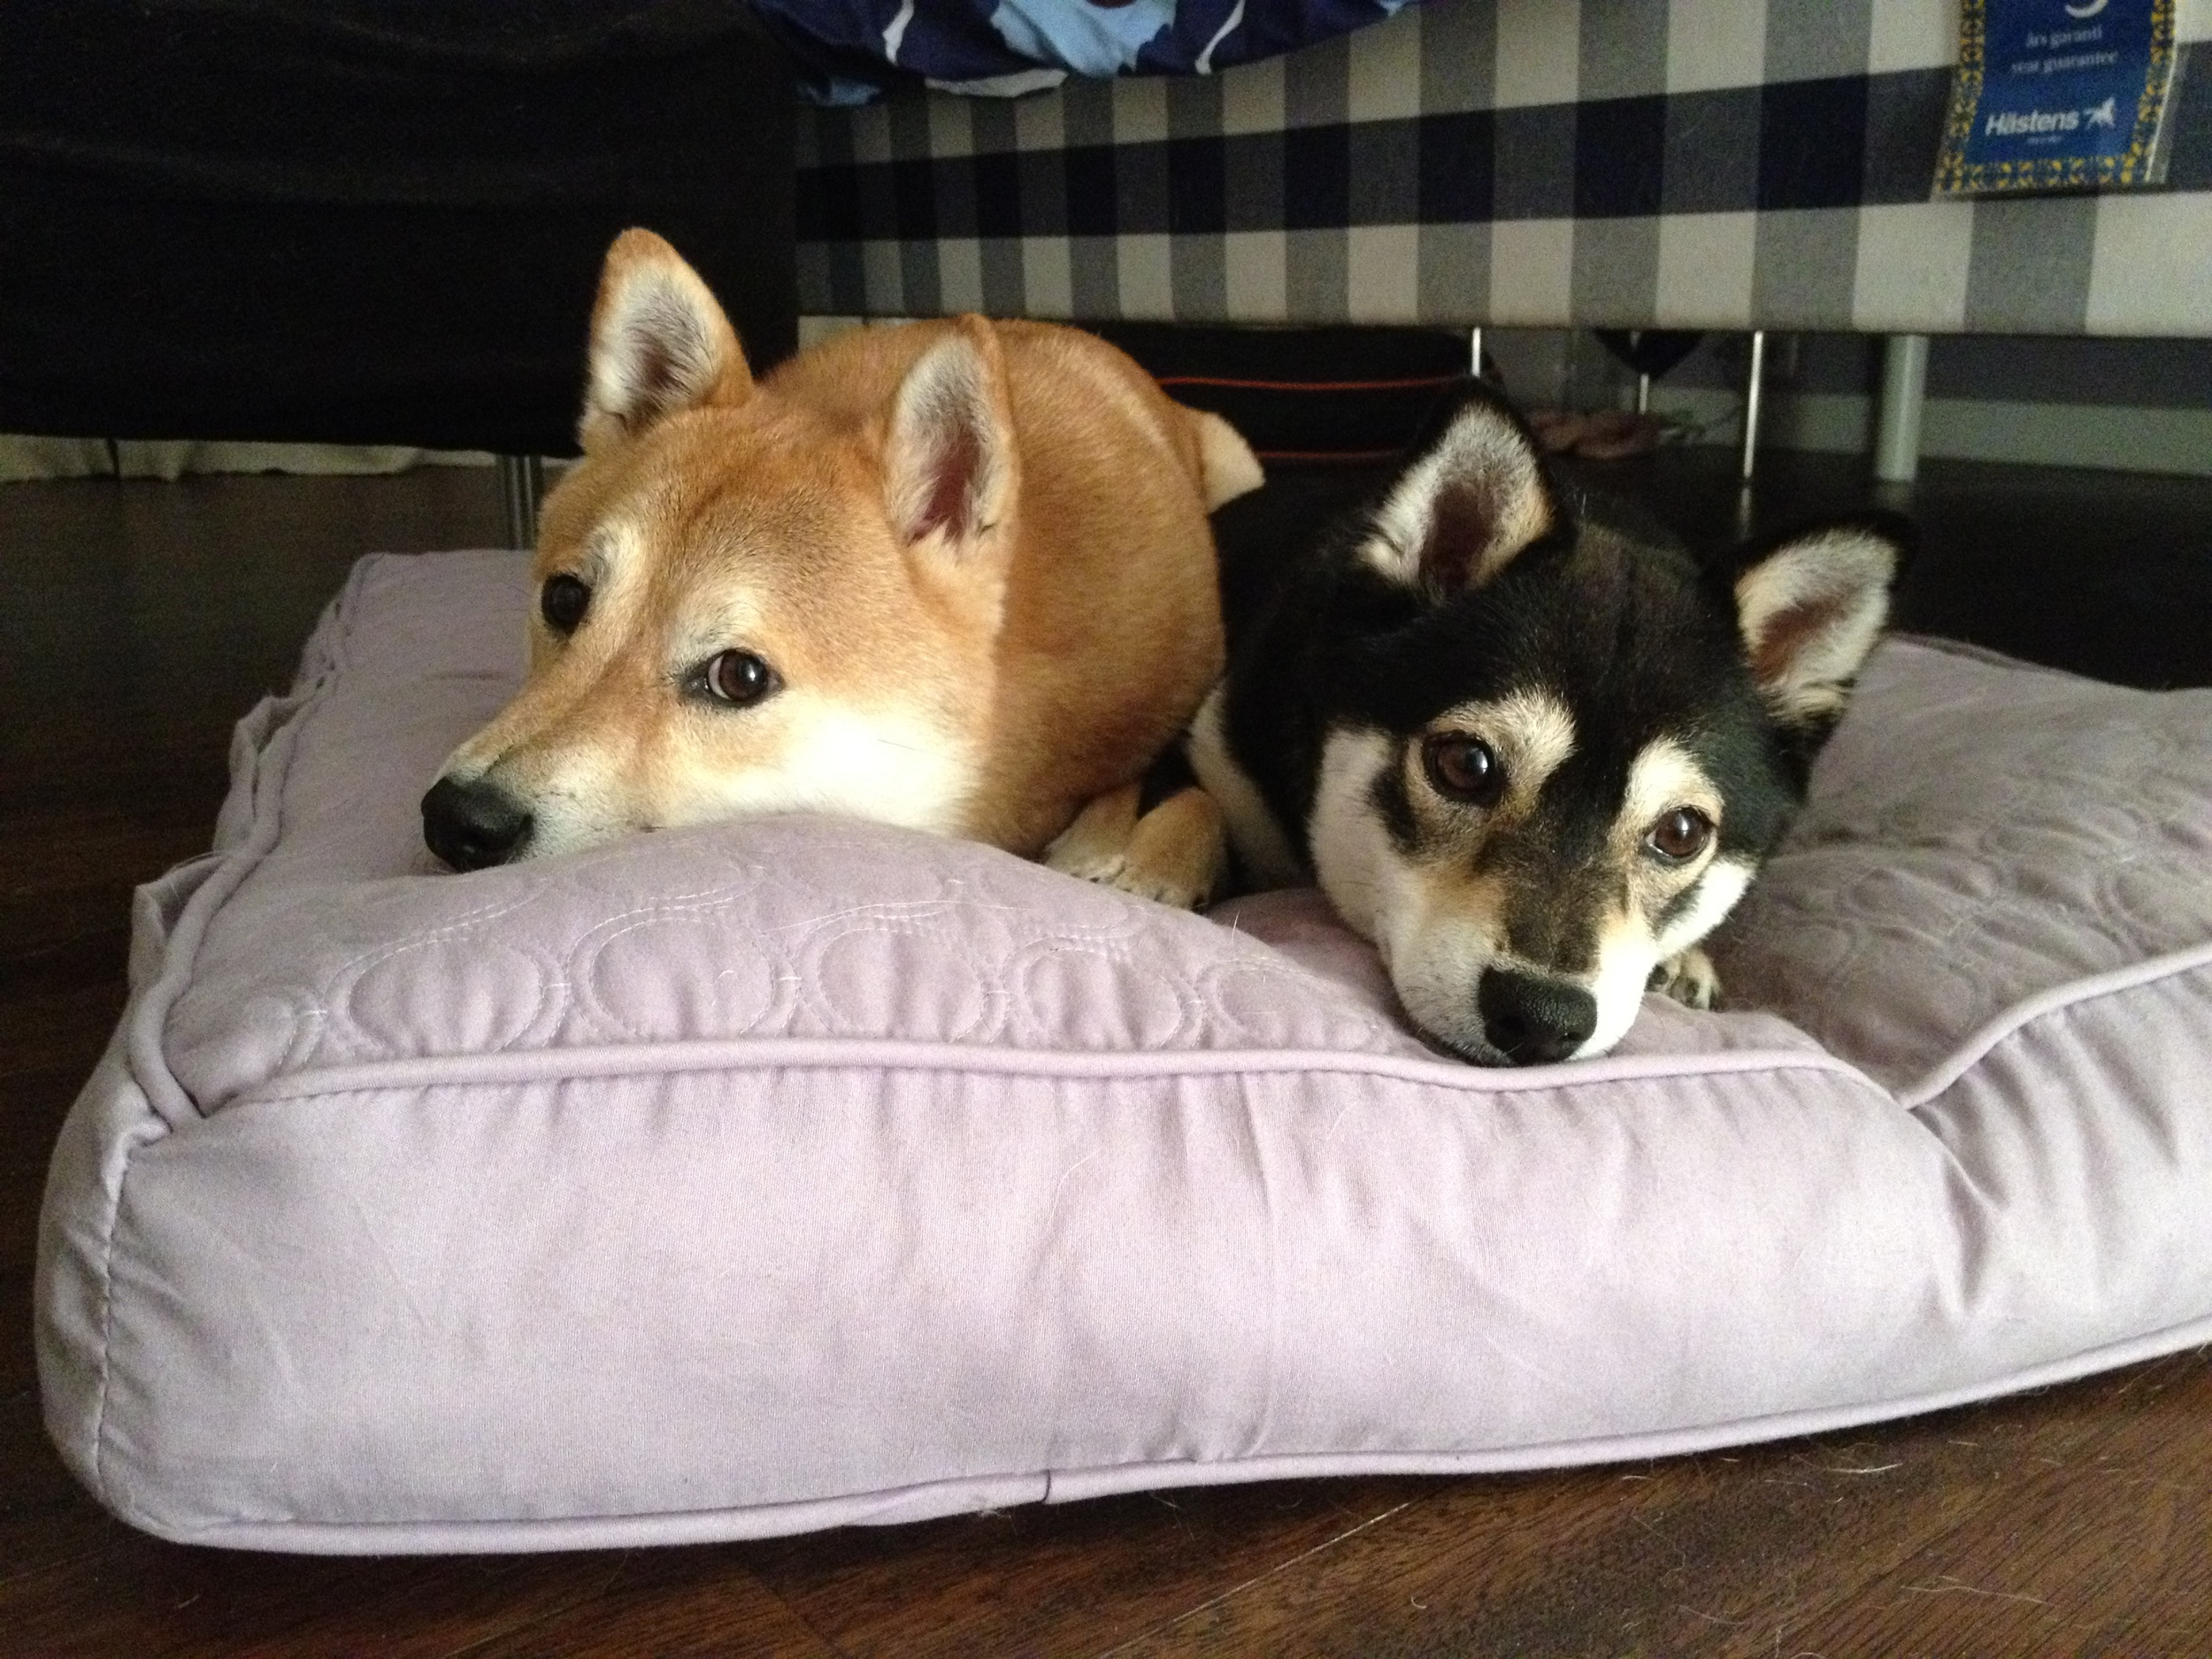 Sharing a bed